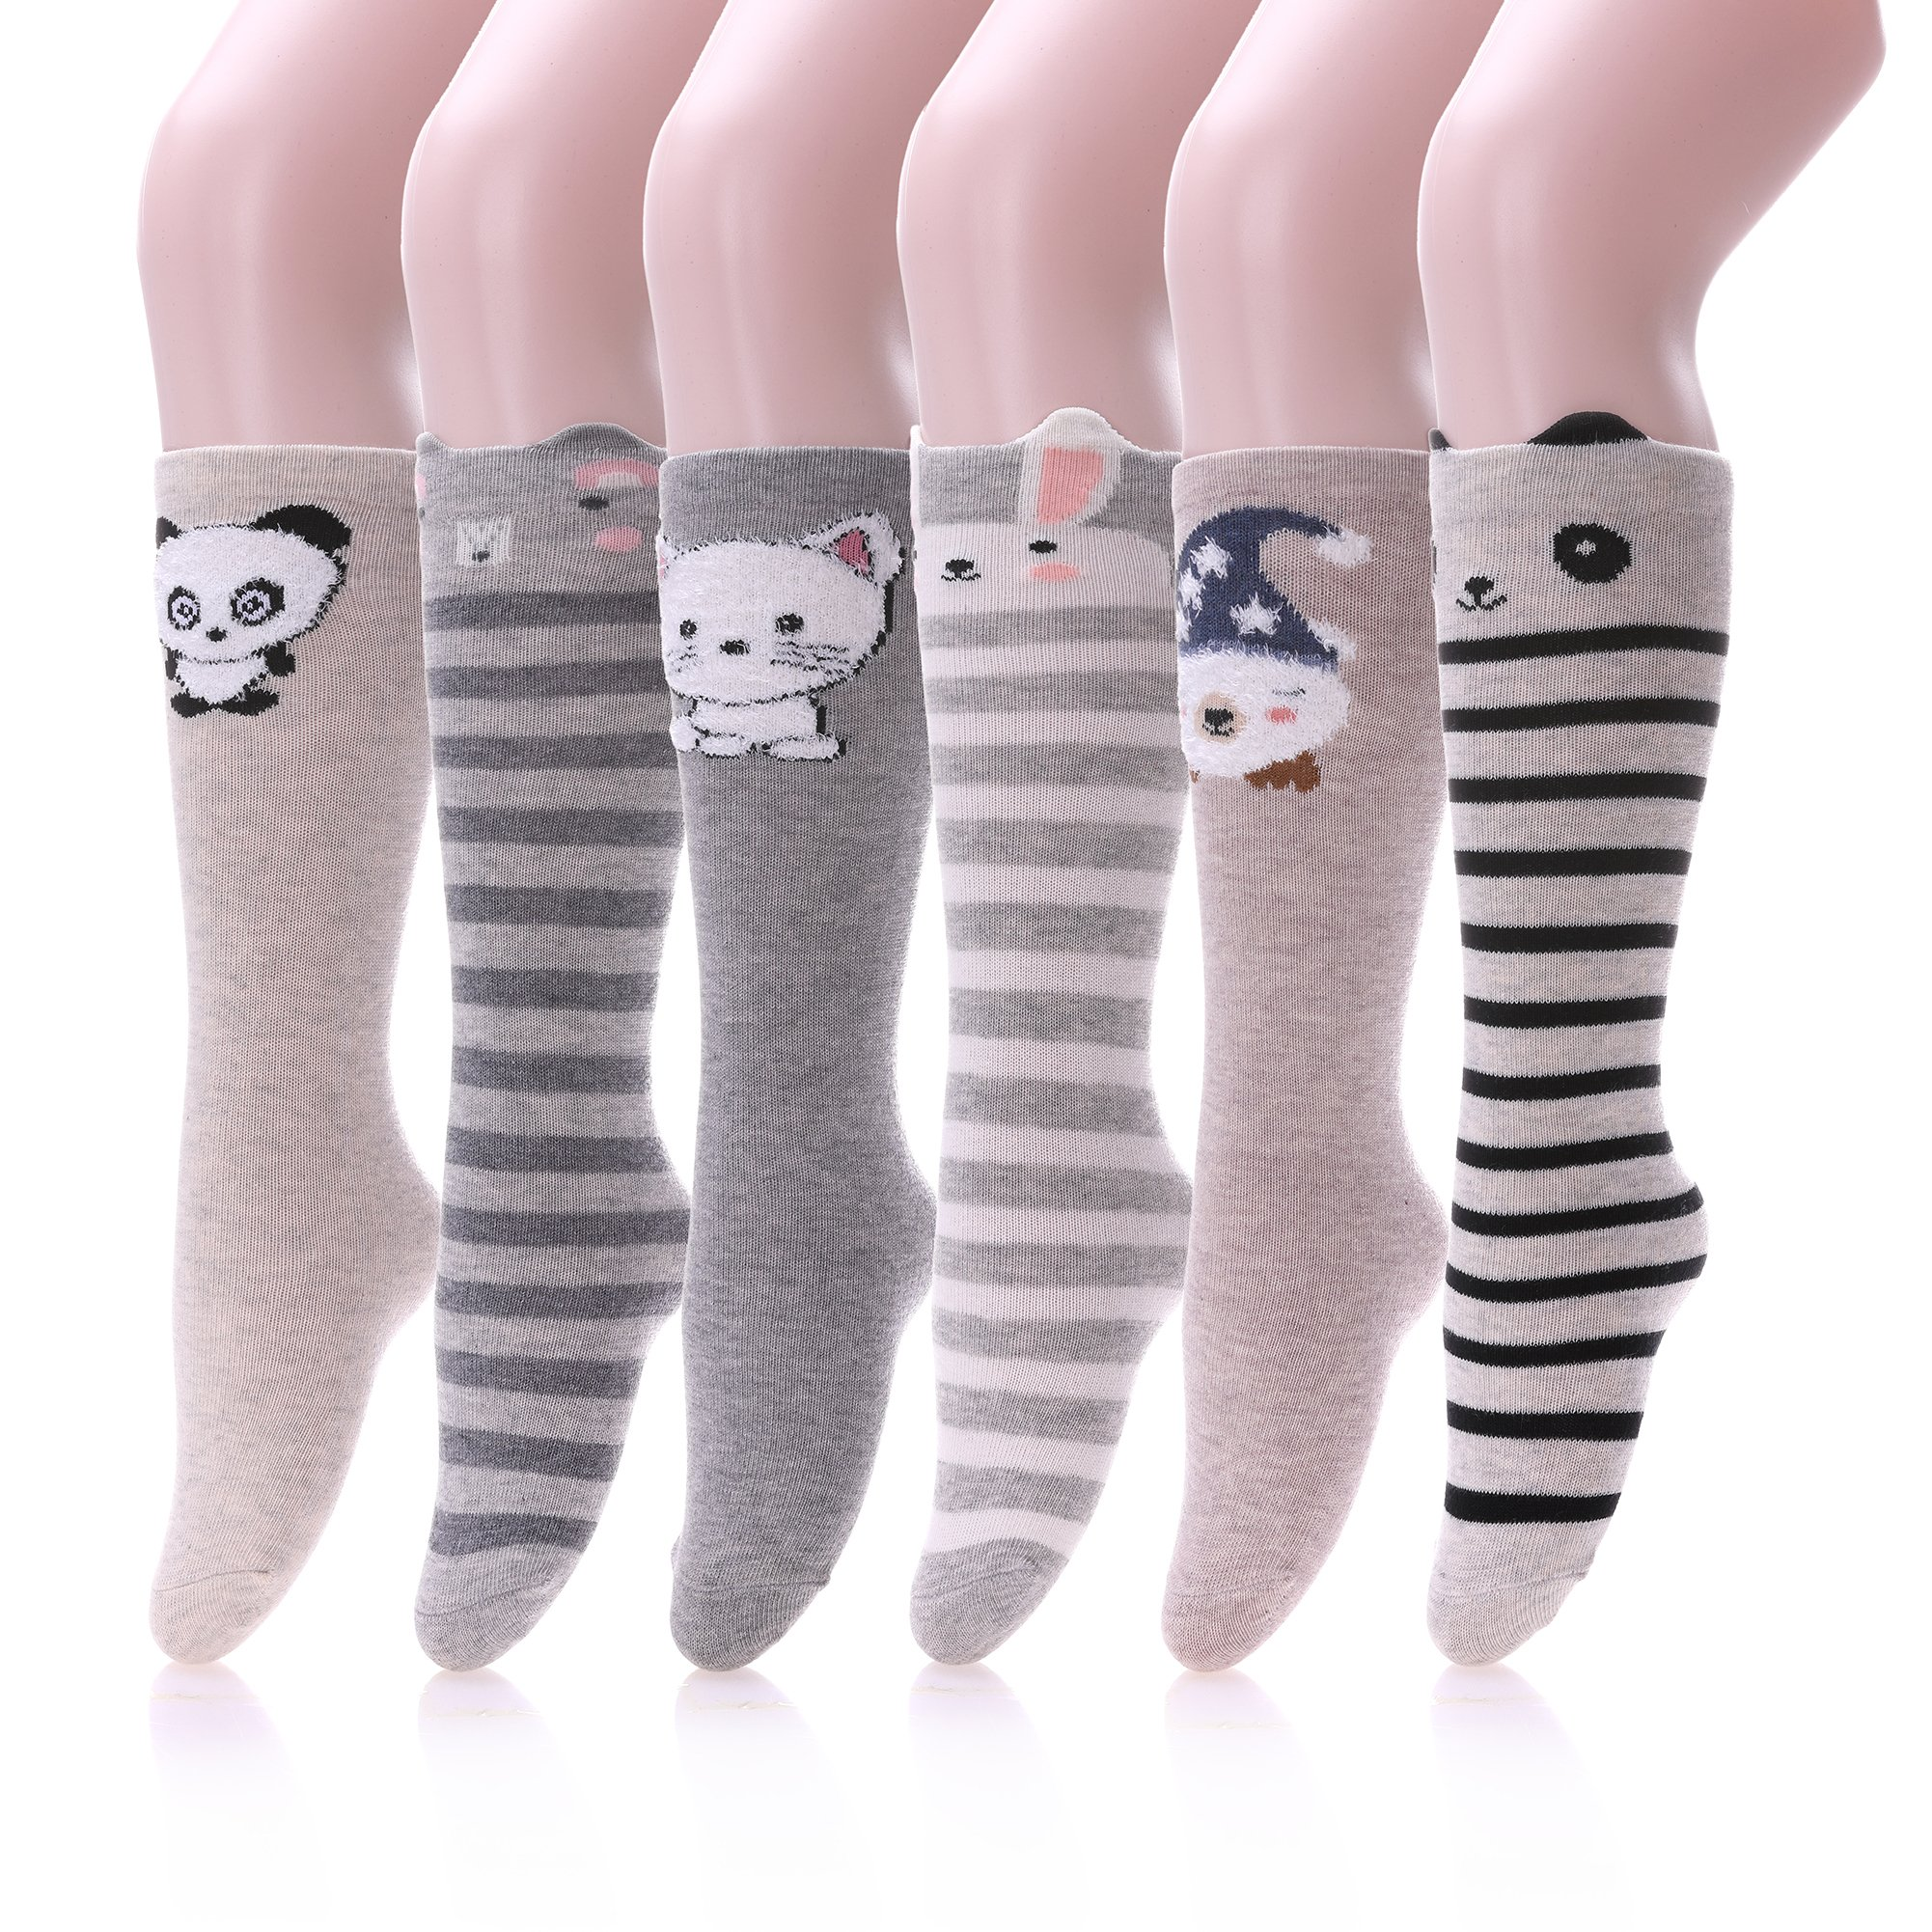 Unisex Baby Socks Girl Knee High Socks Cartoon Animal Cotton Socks 1-6 Years (6 Pairs cartoon)